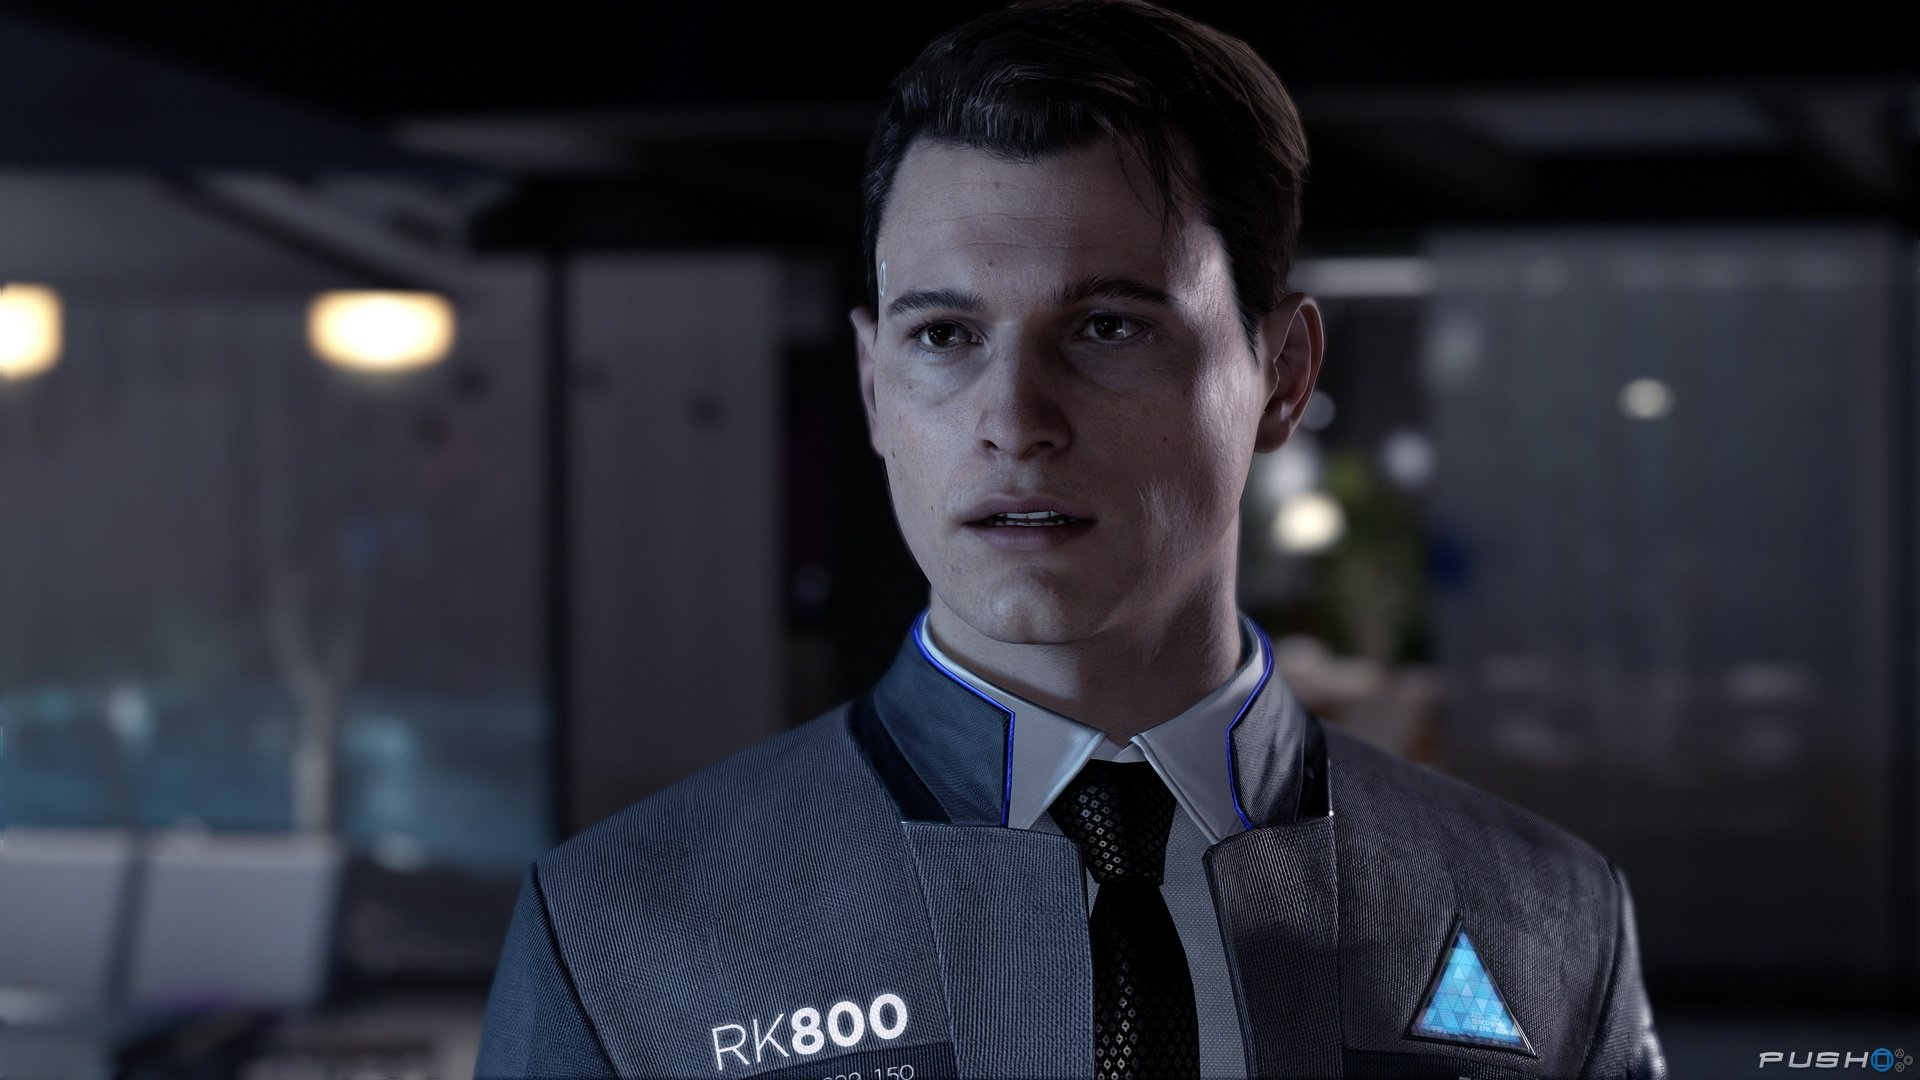 Connor: The Detective - This guy here, is my favorite character in the game. I think you get the chance to say witty, asshole cop remarks, and I loved it! I found myself speeding through the other two characters stories to find out what happens to him next. If you are a fan of cop shows or movies at all, I think you will have a similar opinion as me. You work as an assistant to the main detective on the android case, Hank, who is a bitter old cop who hates androids, go figure. I think it makes for some funny banter, and a bittersweet ending.Ultimately, the choice is yours, make Conner a total dick if you want to, see how it affects your story. Just remember, you can always replay it if you don't like the outcome. Or just keep going, you'll earn a trophy either way.